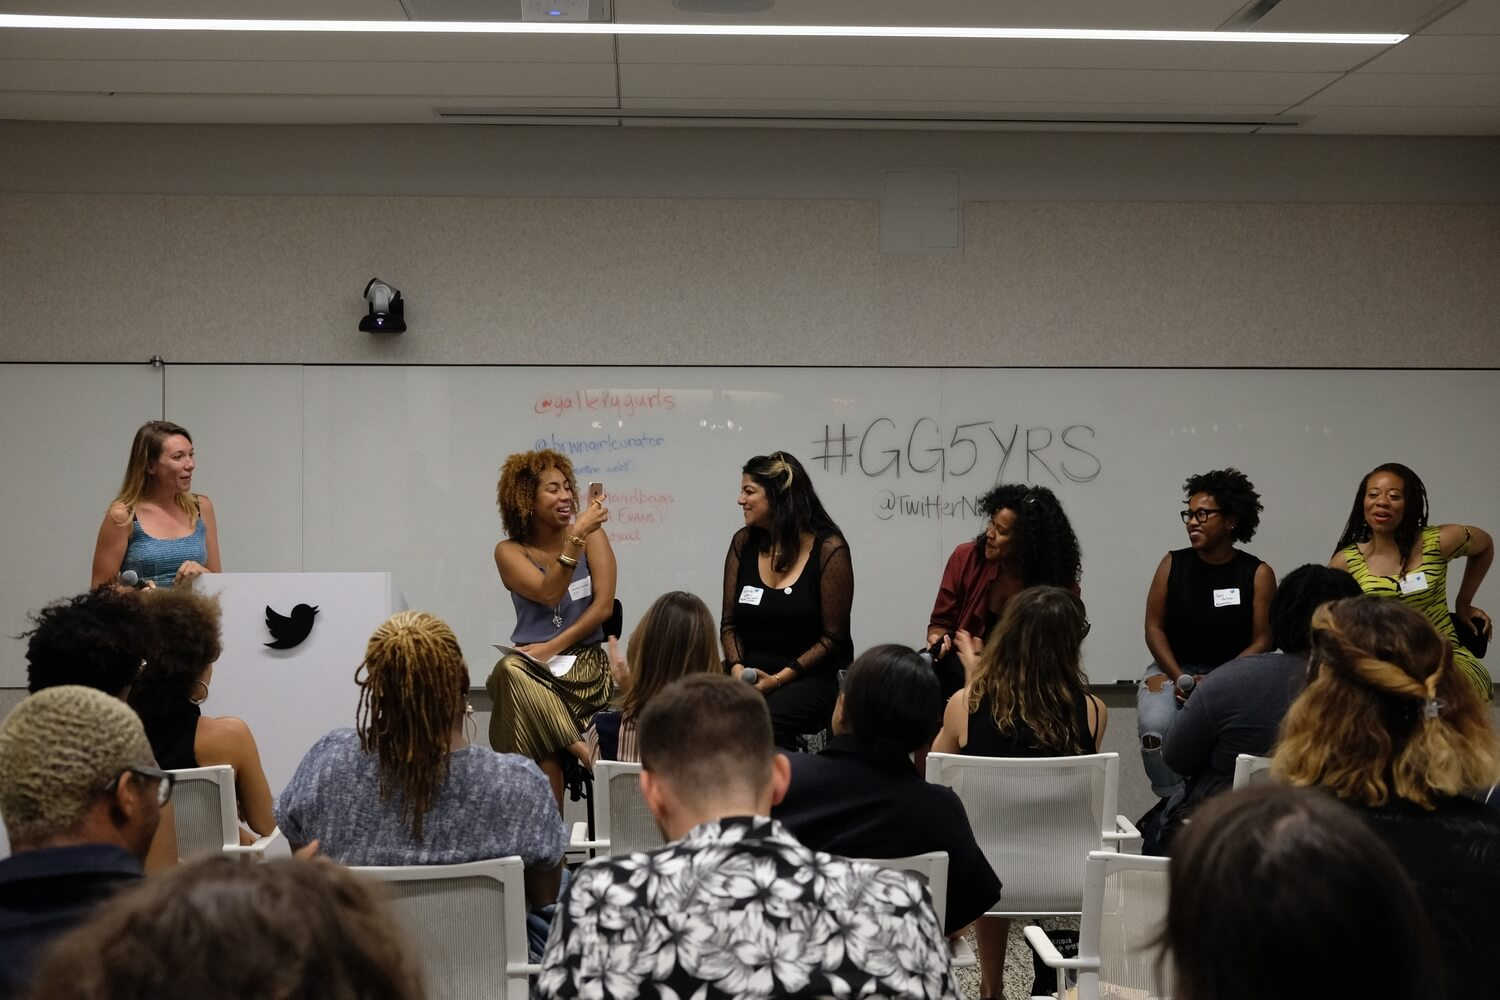 Hernandez with Arielle Adkins, Jasmine Wahi, Marquita Harris, Janel Martinez, and Ayana Evans at Gallery Gurls Five Year Blogiversary at Twitter HQ, NYC. 2017. Photo by Cidney Hue